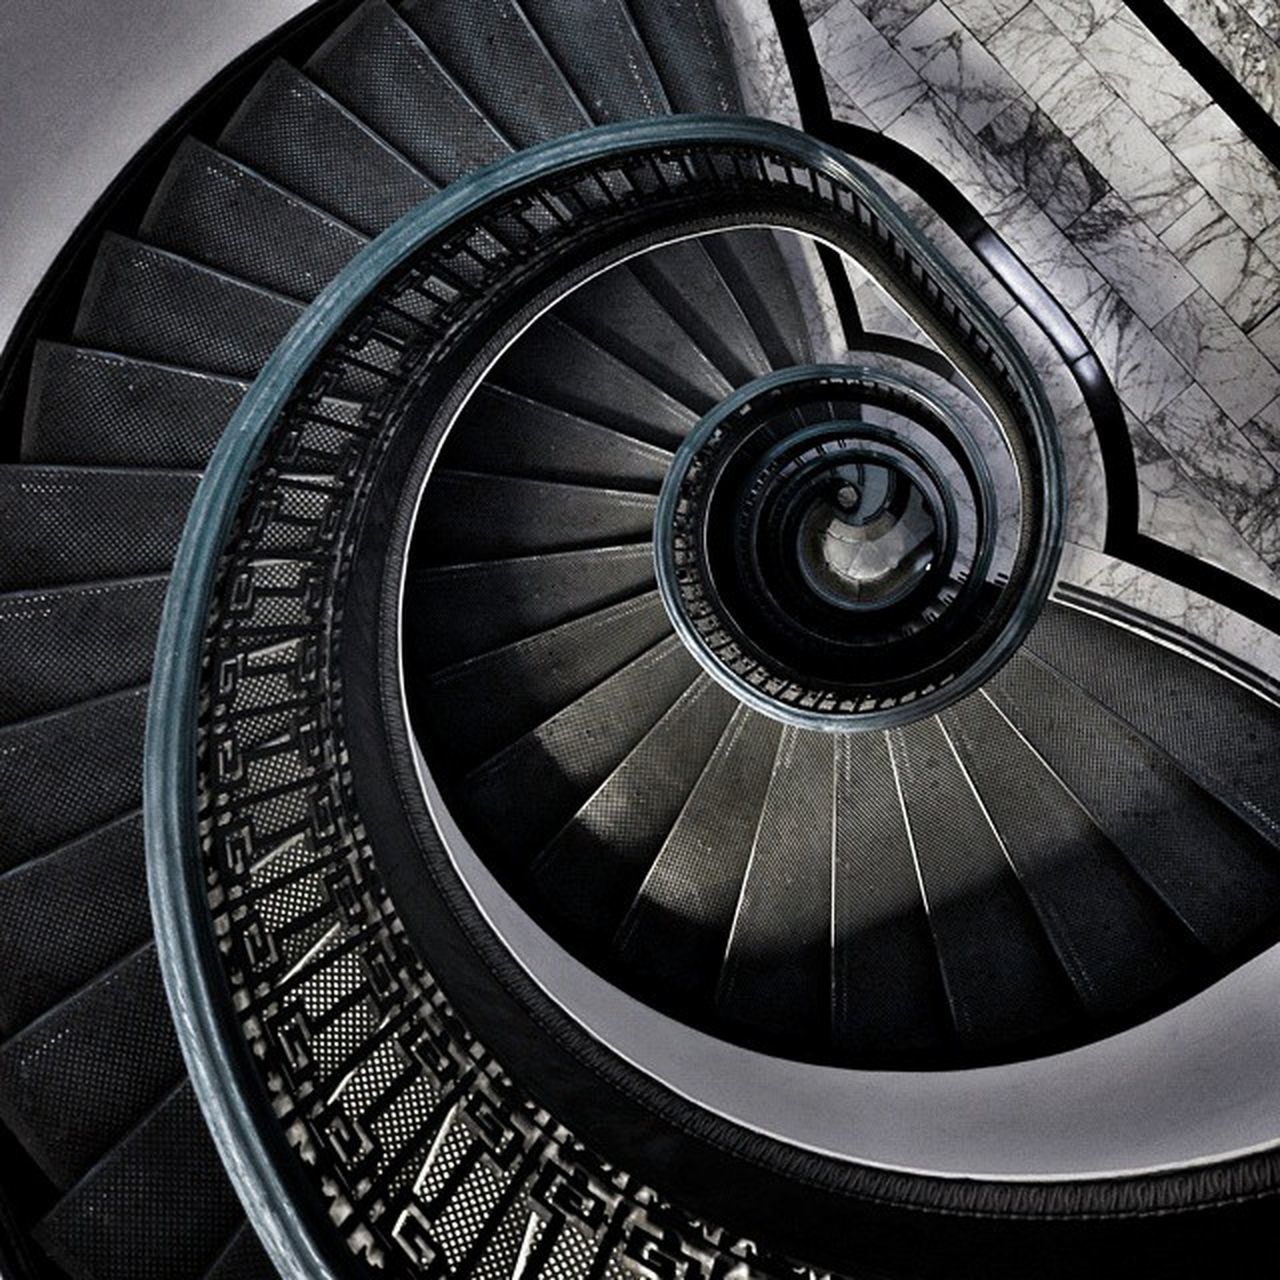 staircase, spiral, steps and staircases, railing, steps, spiral stairs, stairs, architecture, built structure, design, high angle view, hand rail, no people, spiral staircase, day